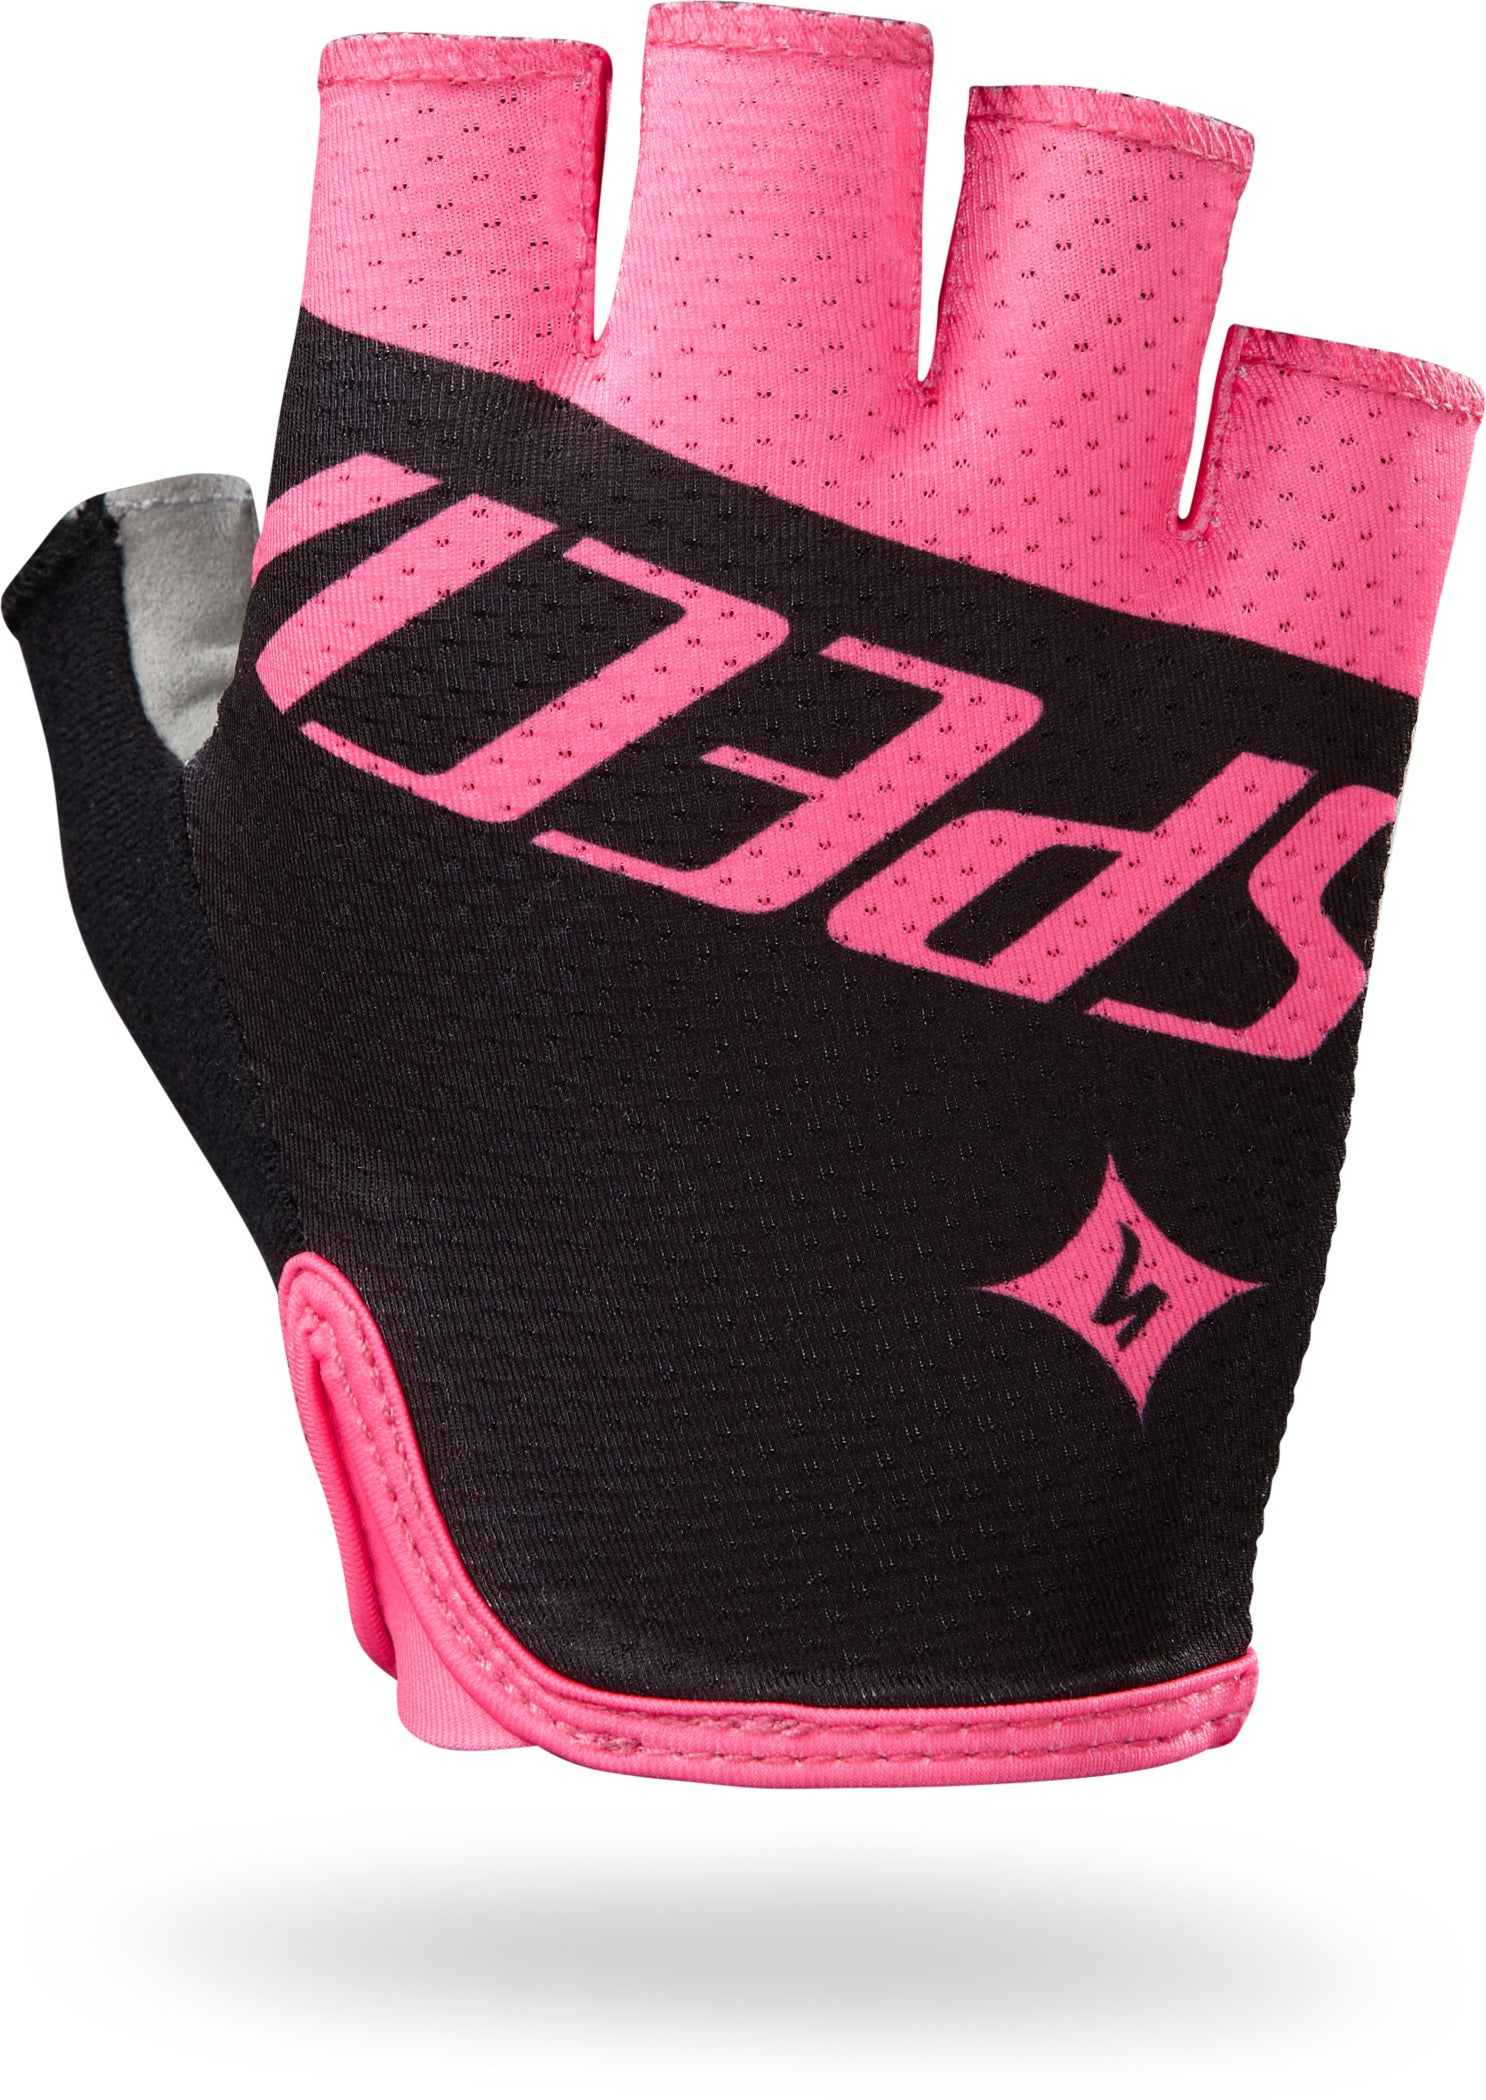 Women's Grail Gloves